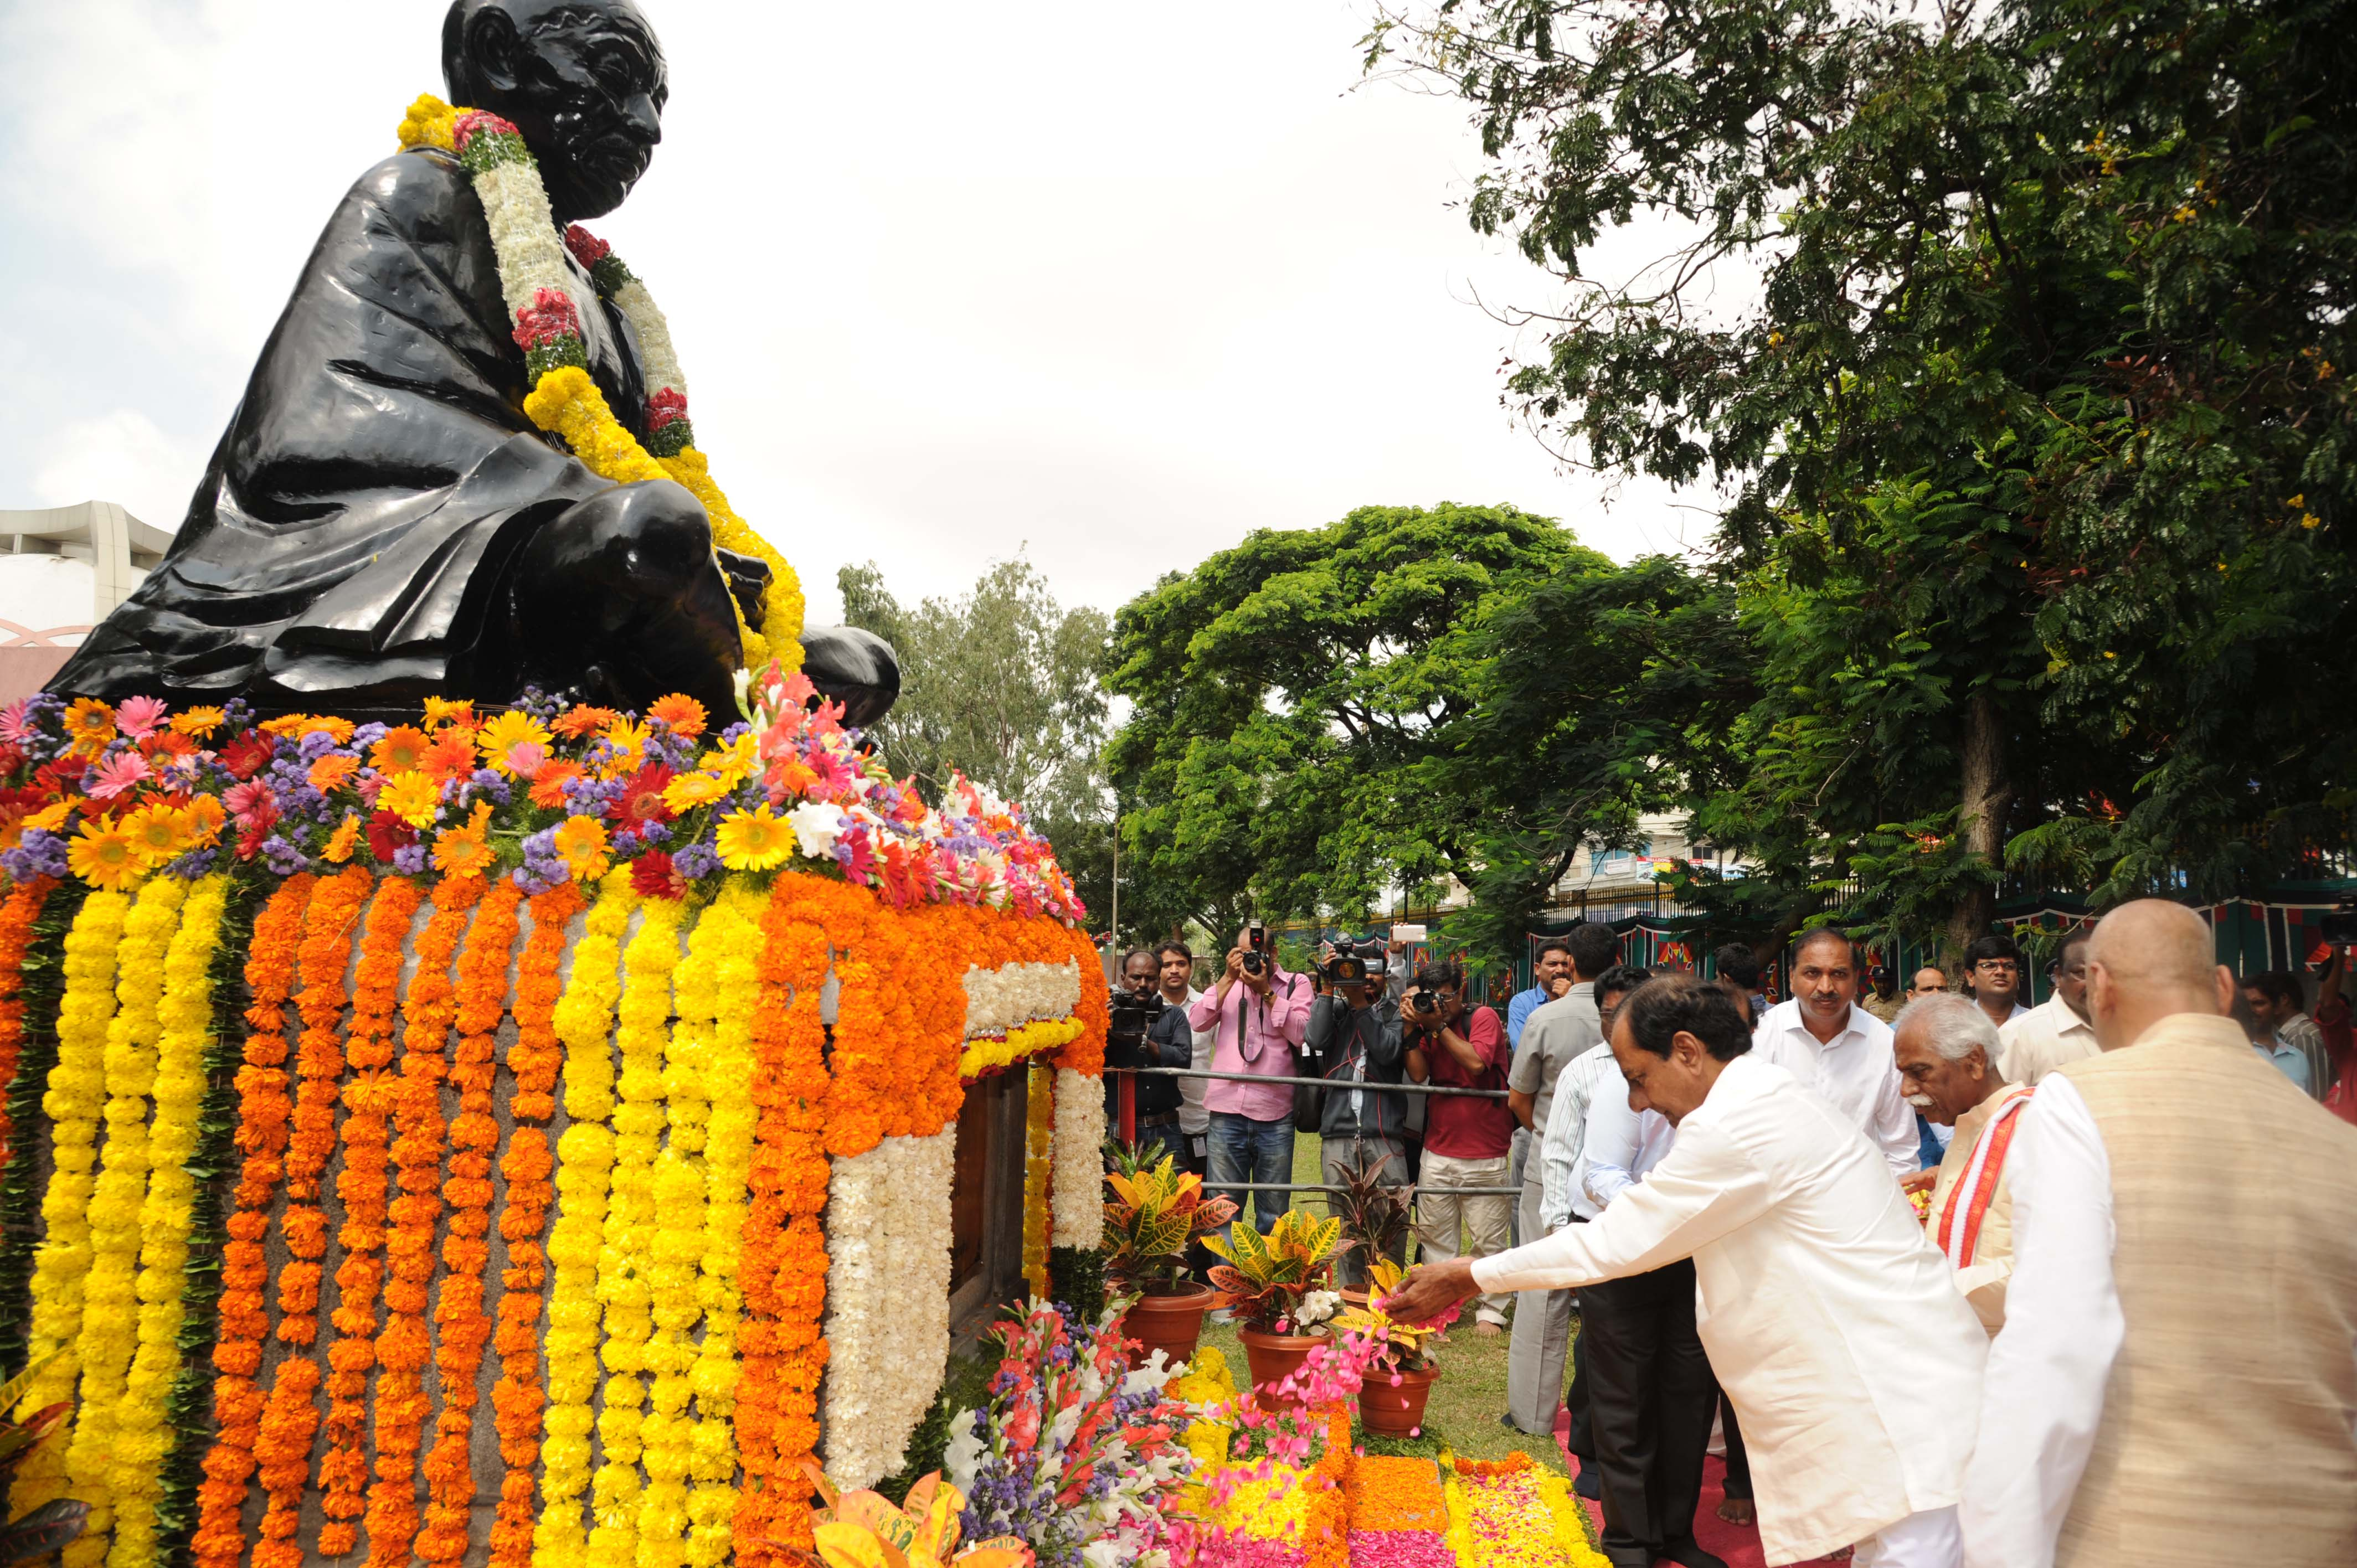 Honourable Governor ESL Narasimhan and TS Chief Minister K.Chandrashekhar Rao paid Floral tributes at Samadi and visited Bapu Memorial building at Bapu Ghat, Langar Houz at 10.30 AM on 02.10.2016.